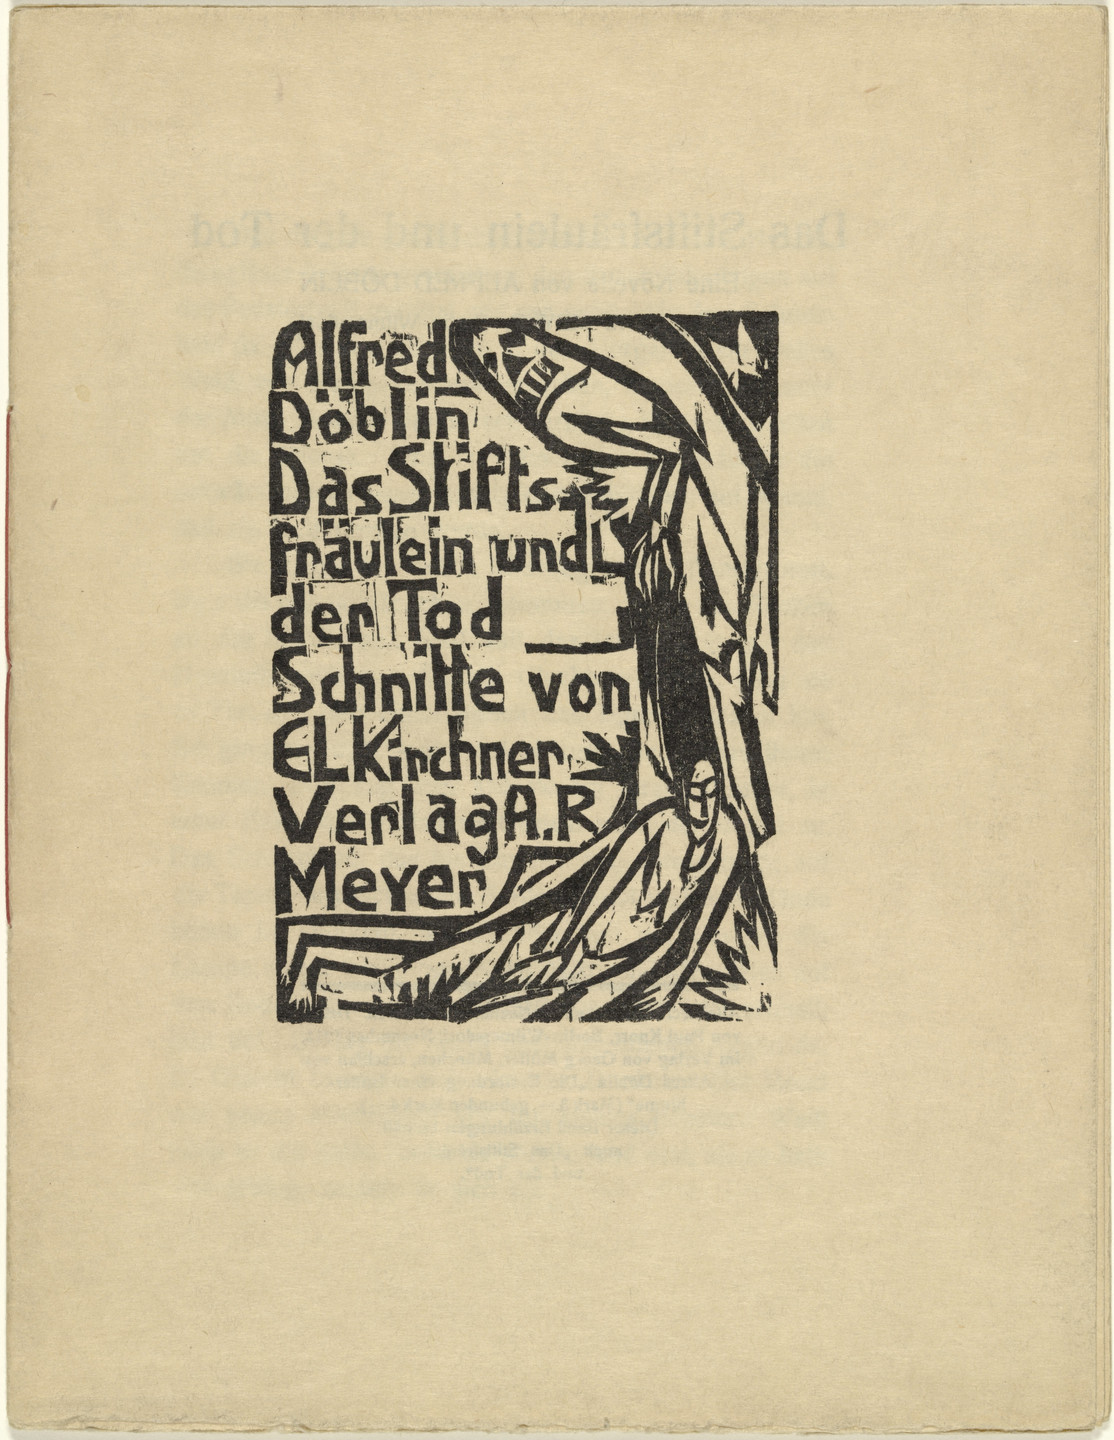 Ernst Ludwig Kirchner. Front cover/title page from Das Stiftsfräulein und der Tod (The Canoness and Death). 1913